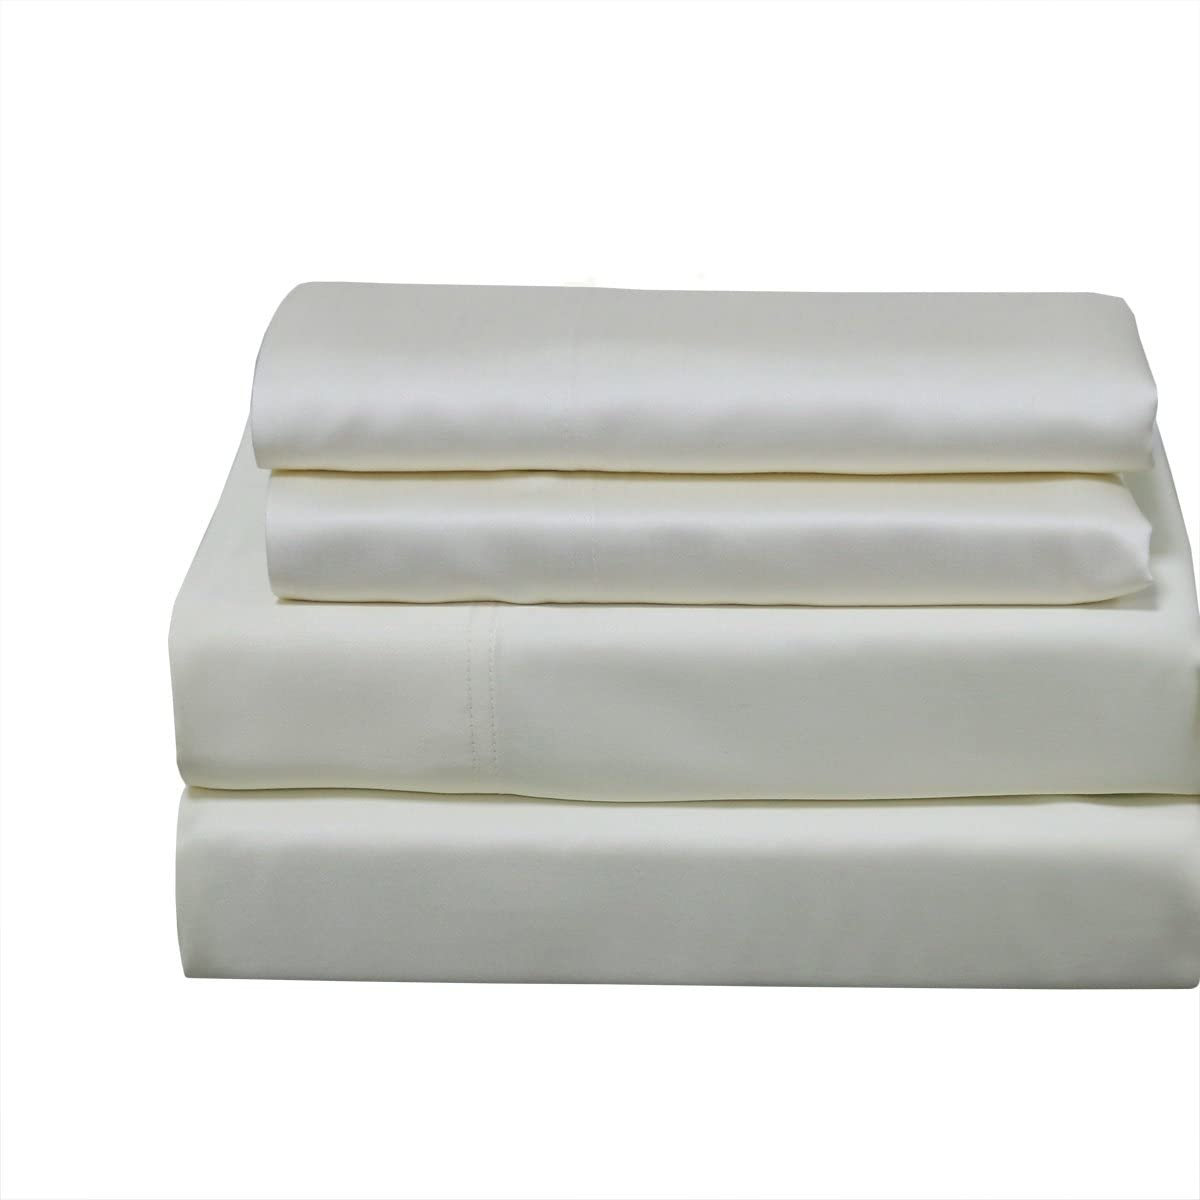 CinchFit USA Made & Maine Made - Cinches to Fit & Doesn't Pop Off! Home, Adjustable Beds - Luxury Bamboo 600TC Sheet Set (Ivory, Split Flex Top King)